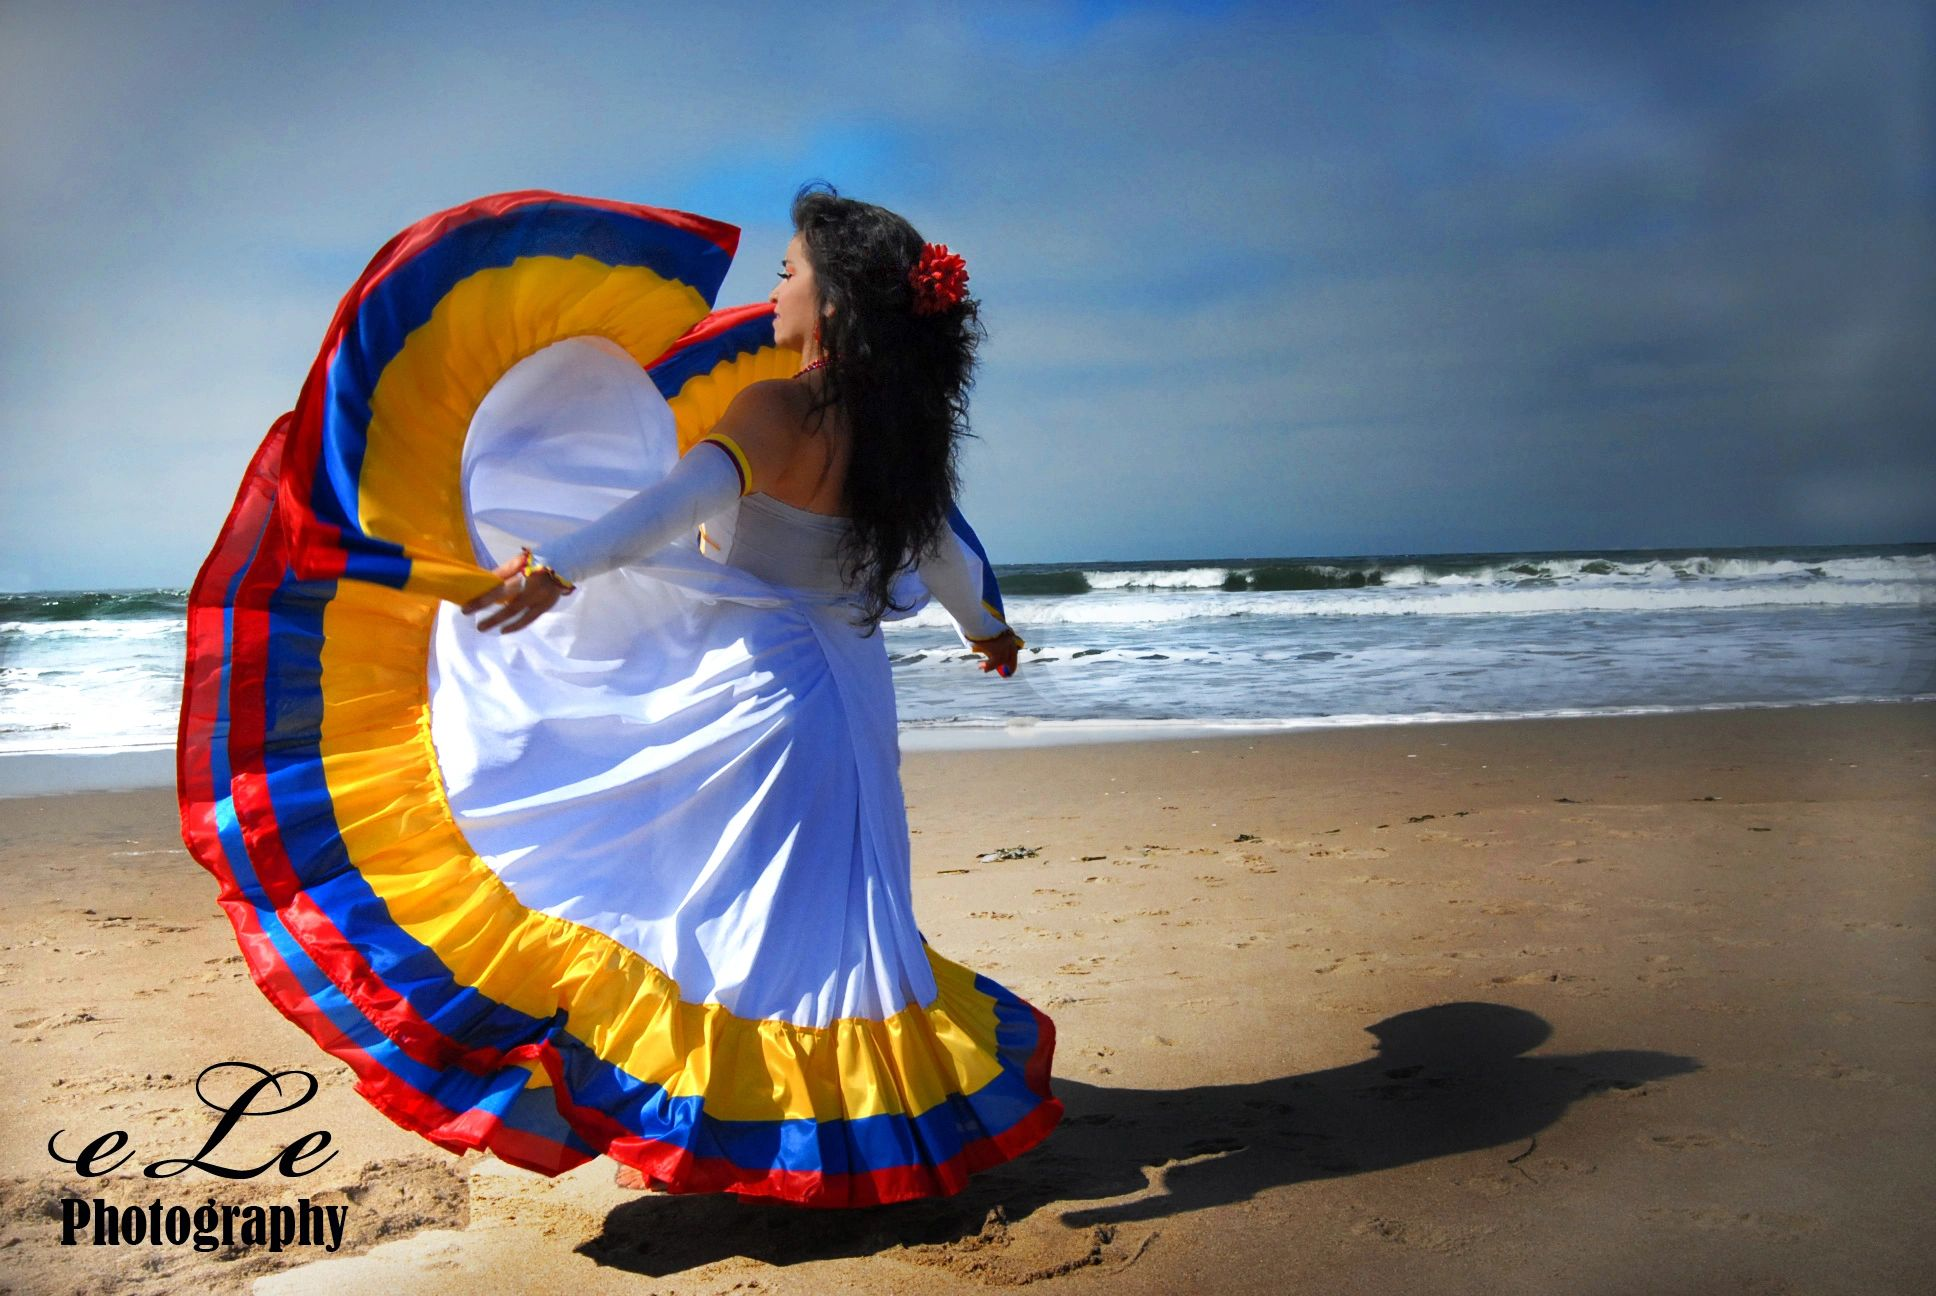 Adriana waving a traditional Colombian skirt at the Ocean Beach in San Francisco, California. USA.